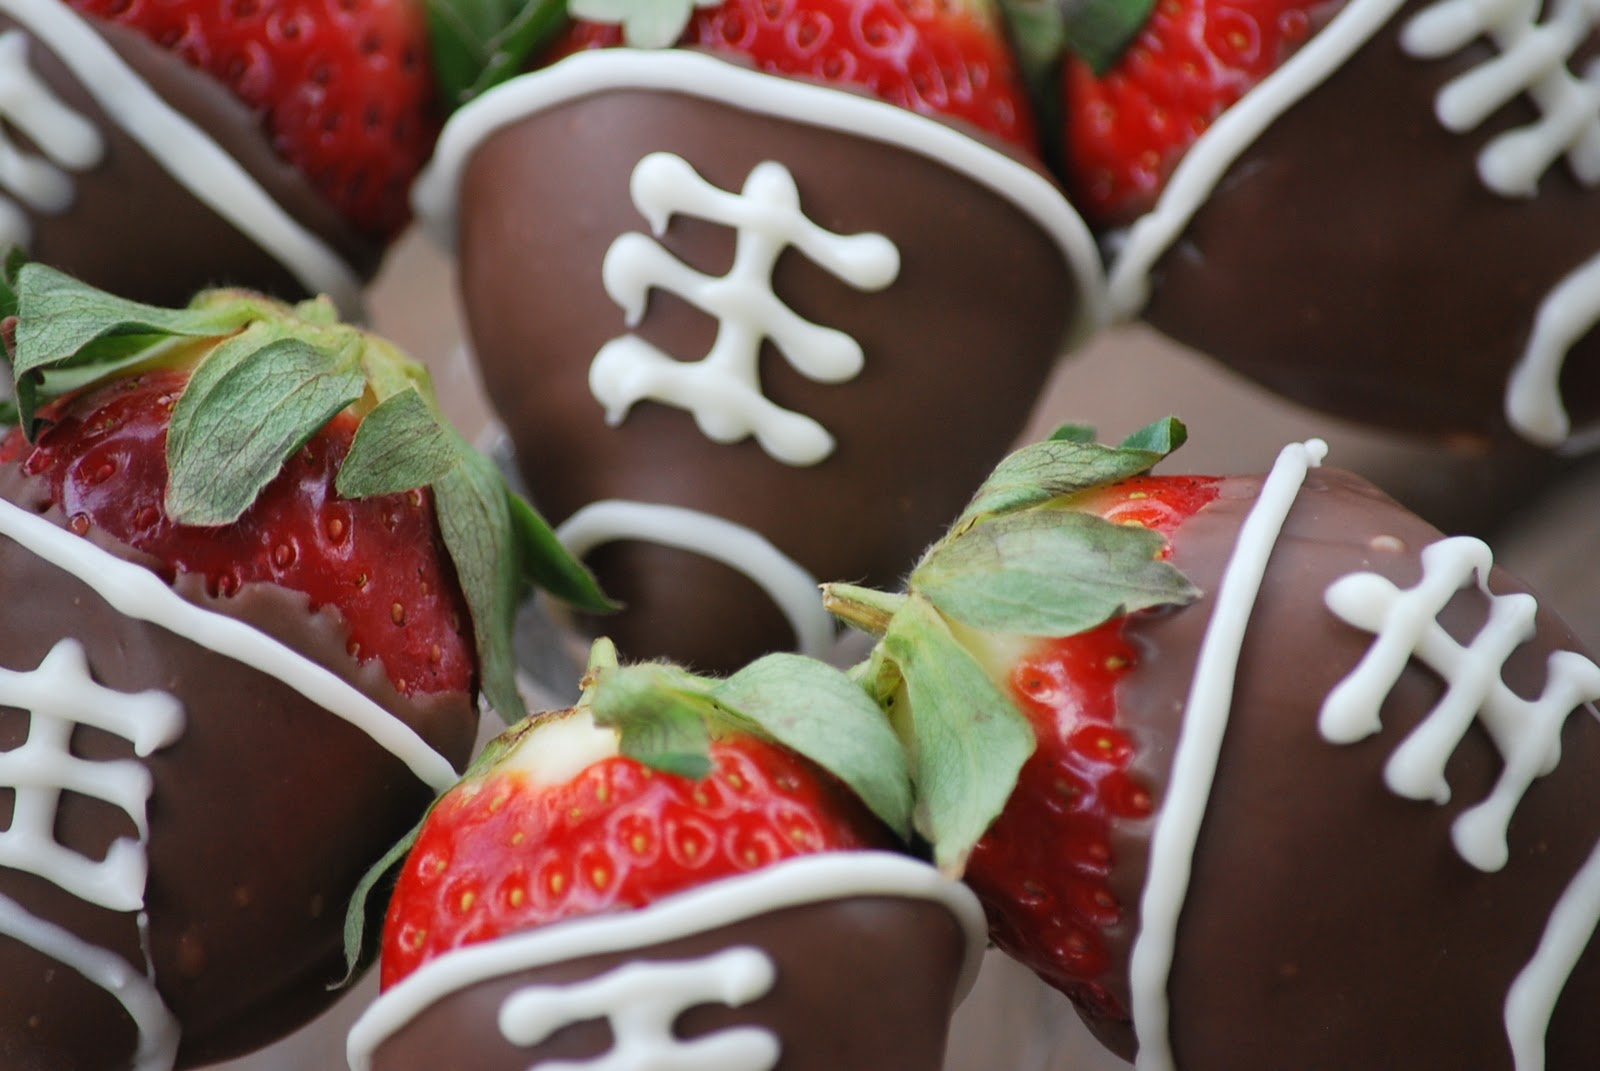 chocolate covered strawberry footballs to eat during the big game